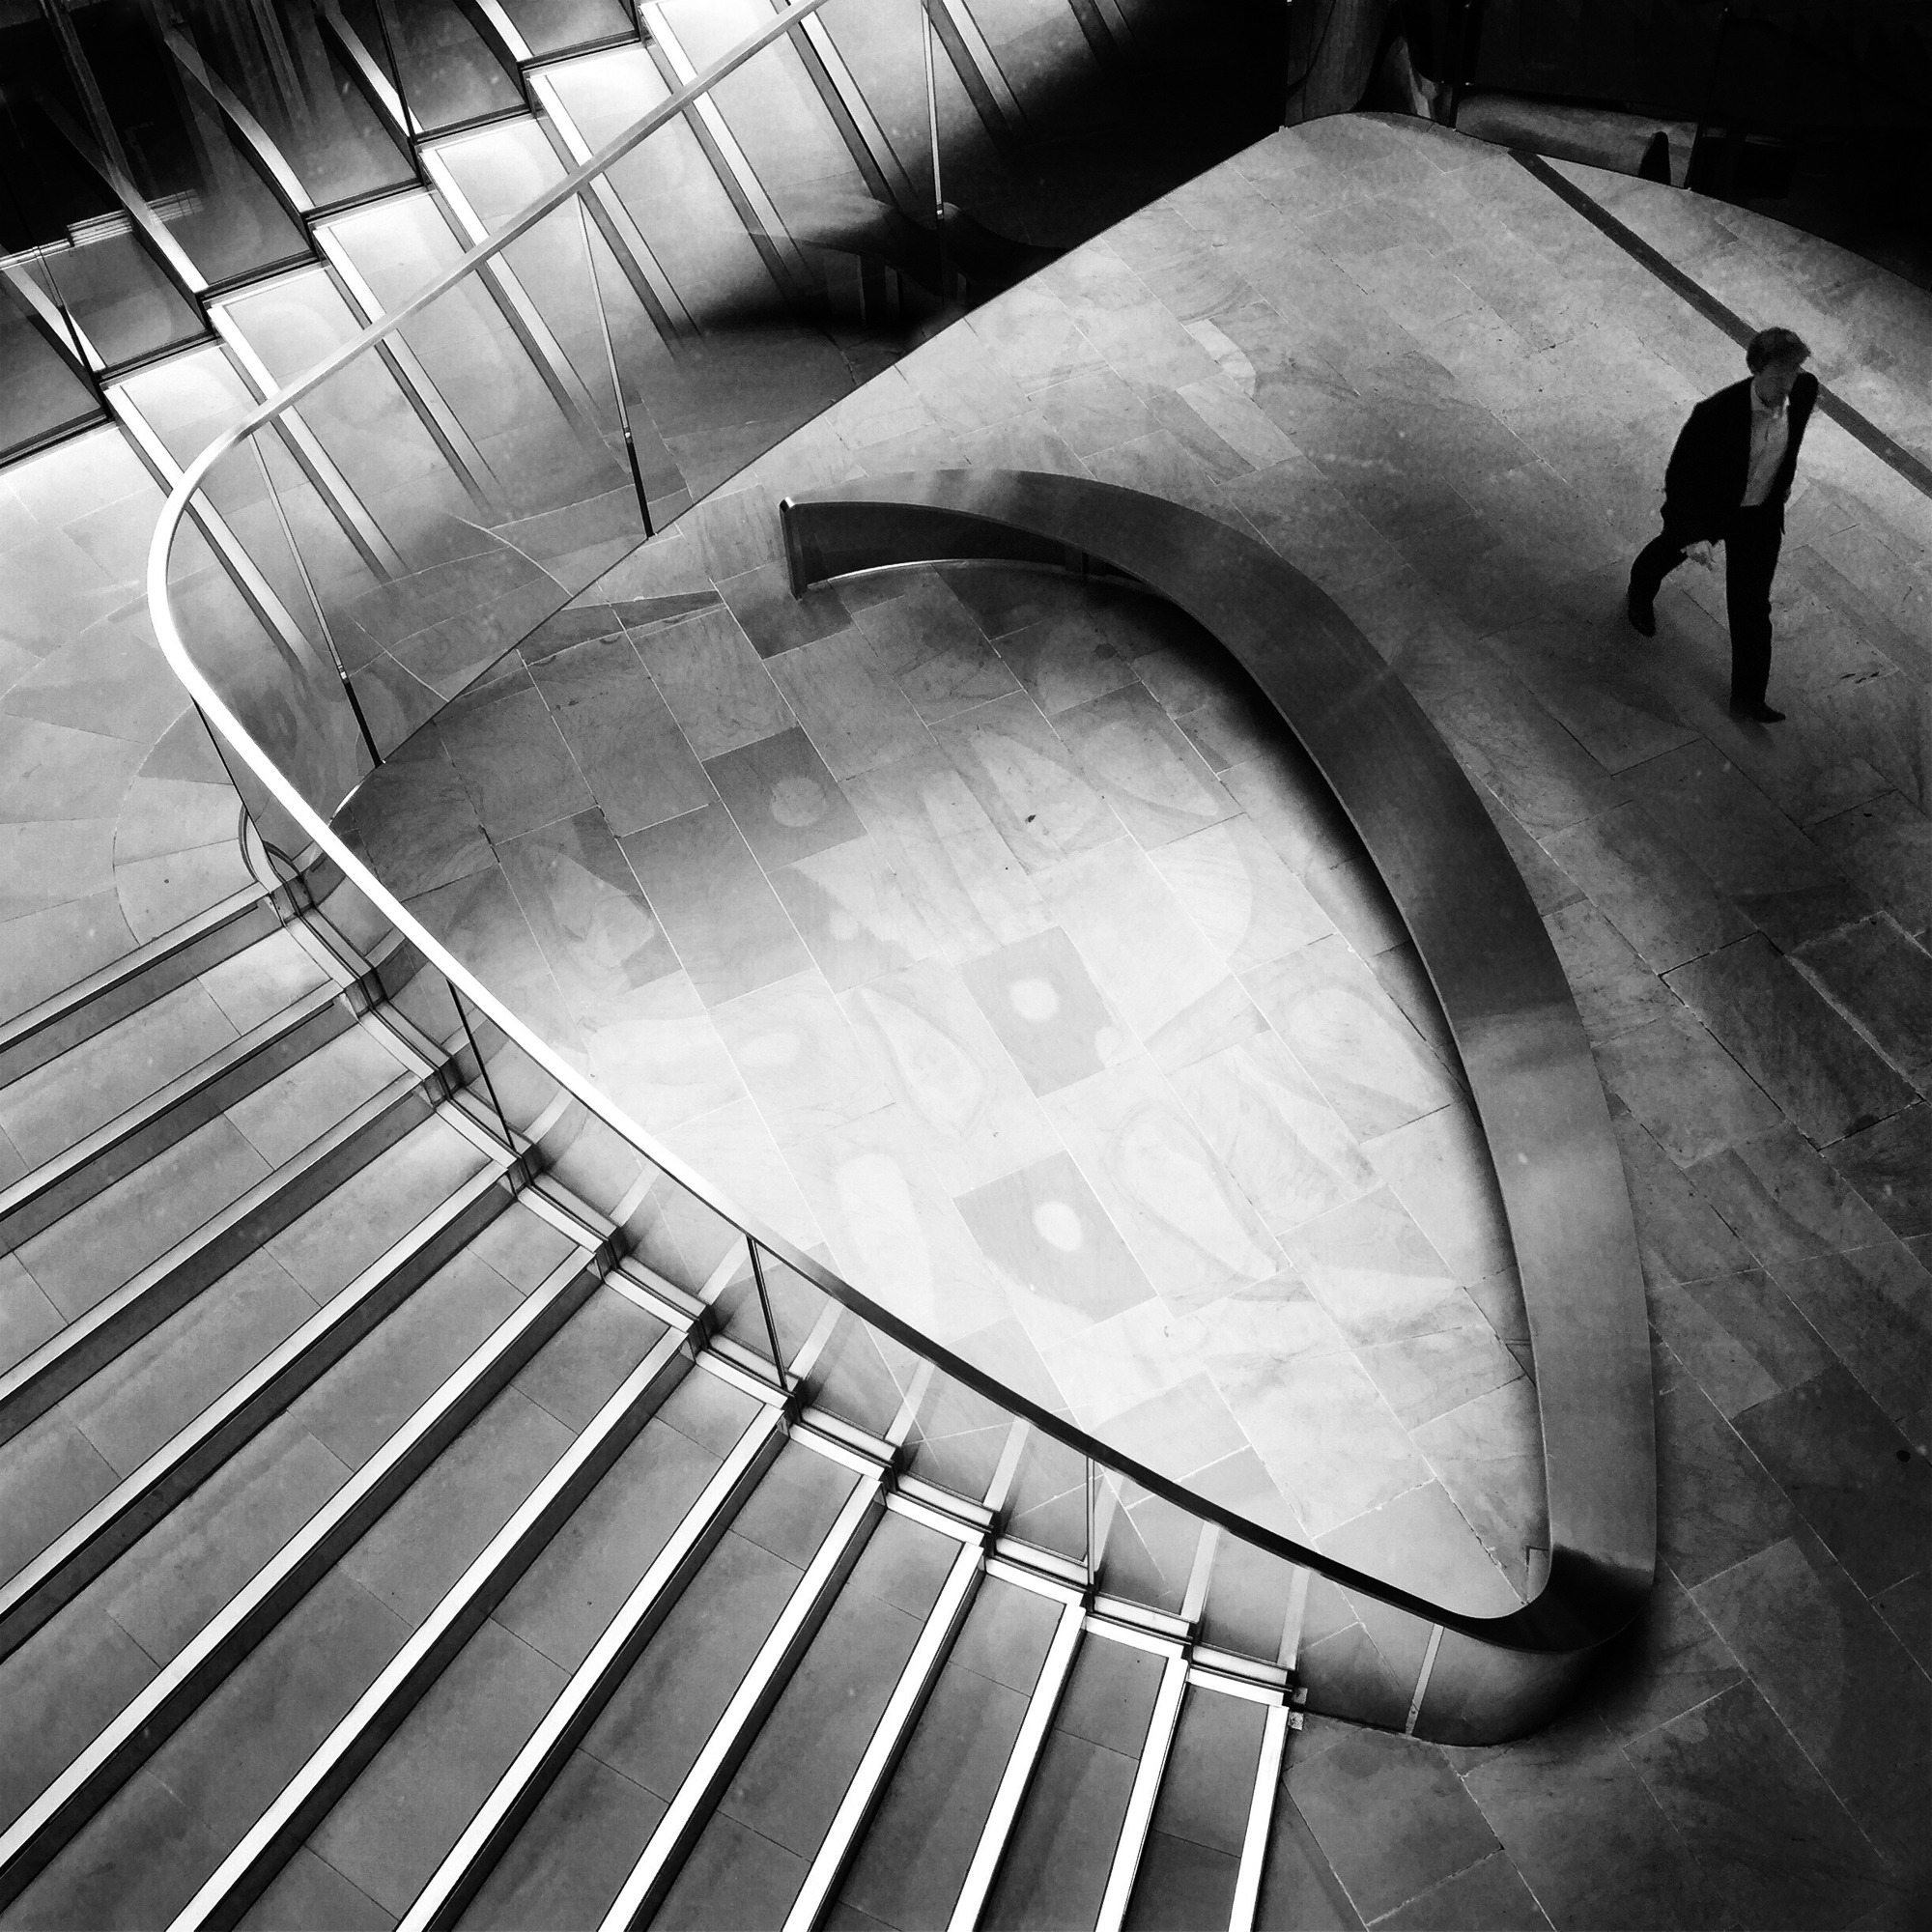 Down the Spiral